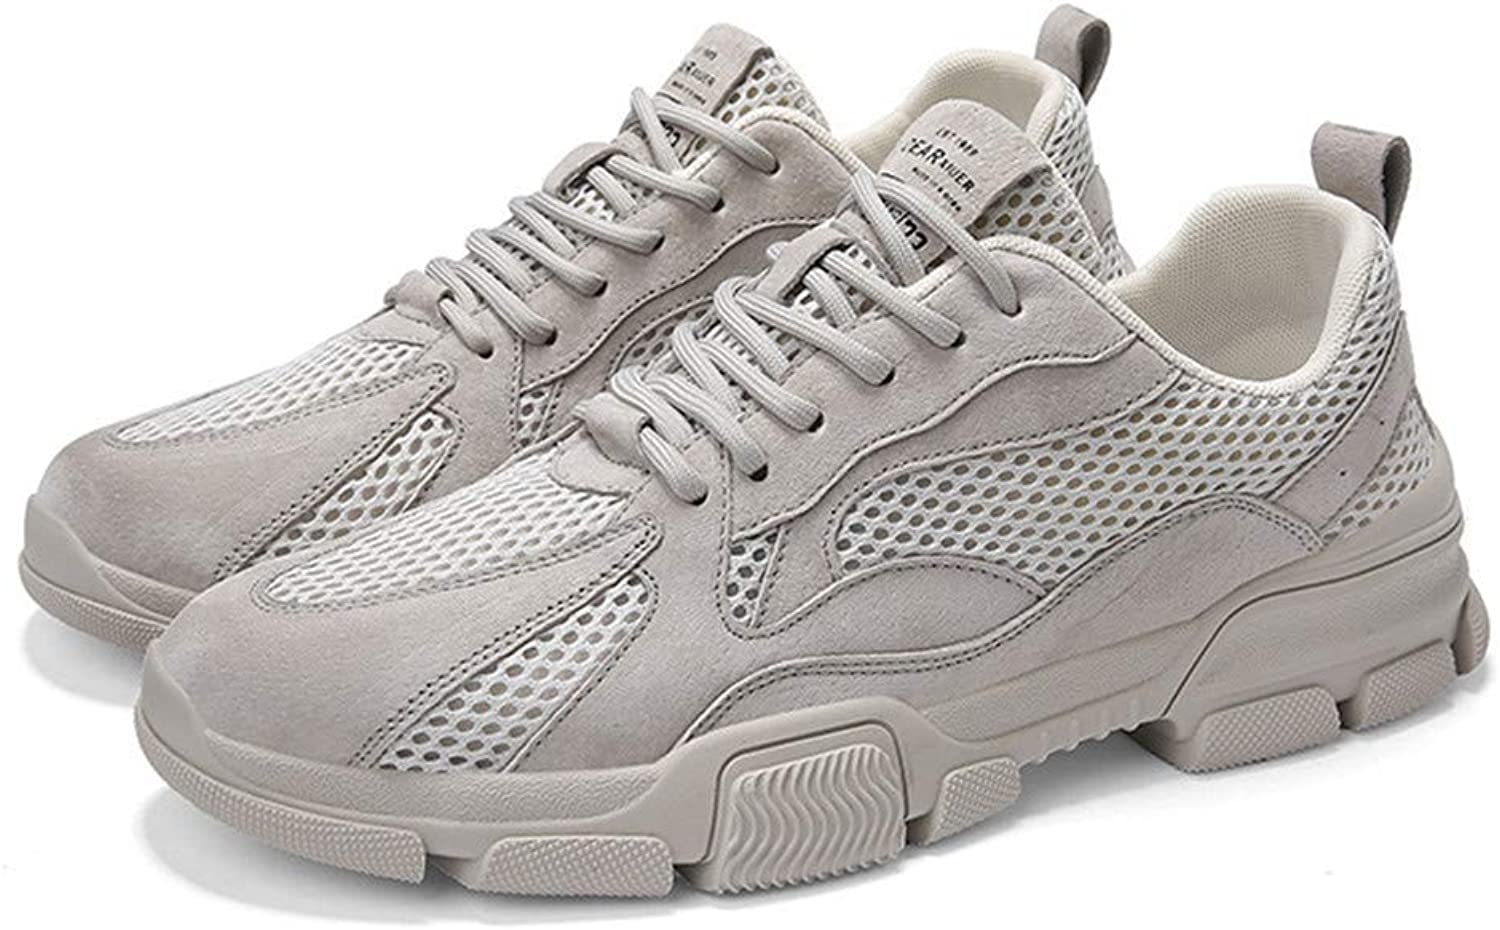 JLCP Mens Casual Athletic Sneakers, Mesh Trainers Walking shoes Breathable Lightweight Non-slip Gym travel Running Outdoor Sports shoes,1,41